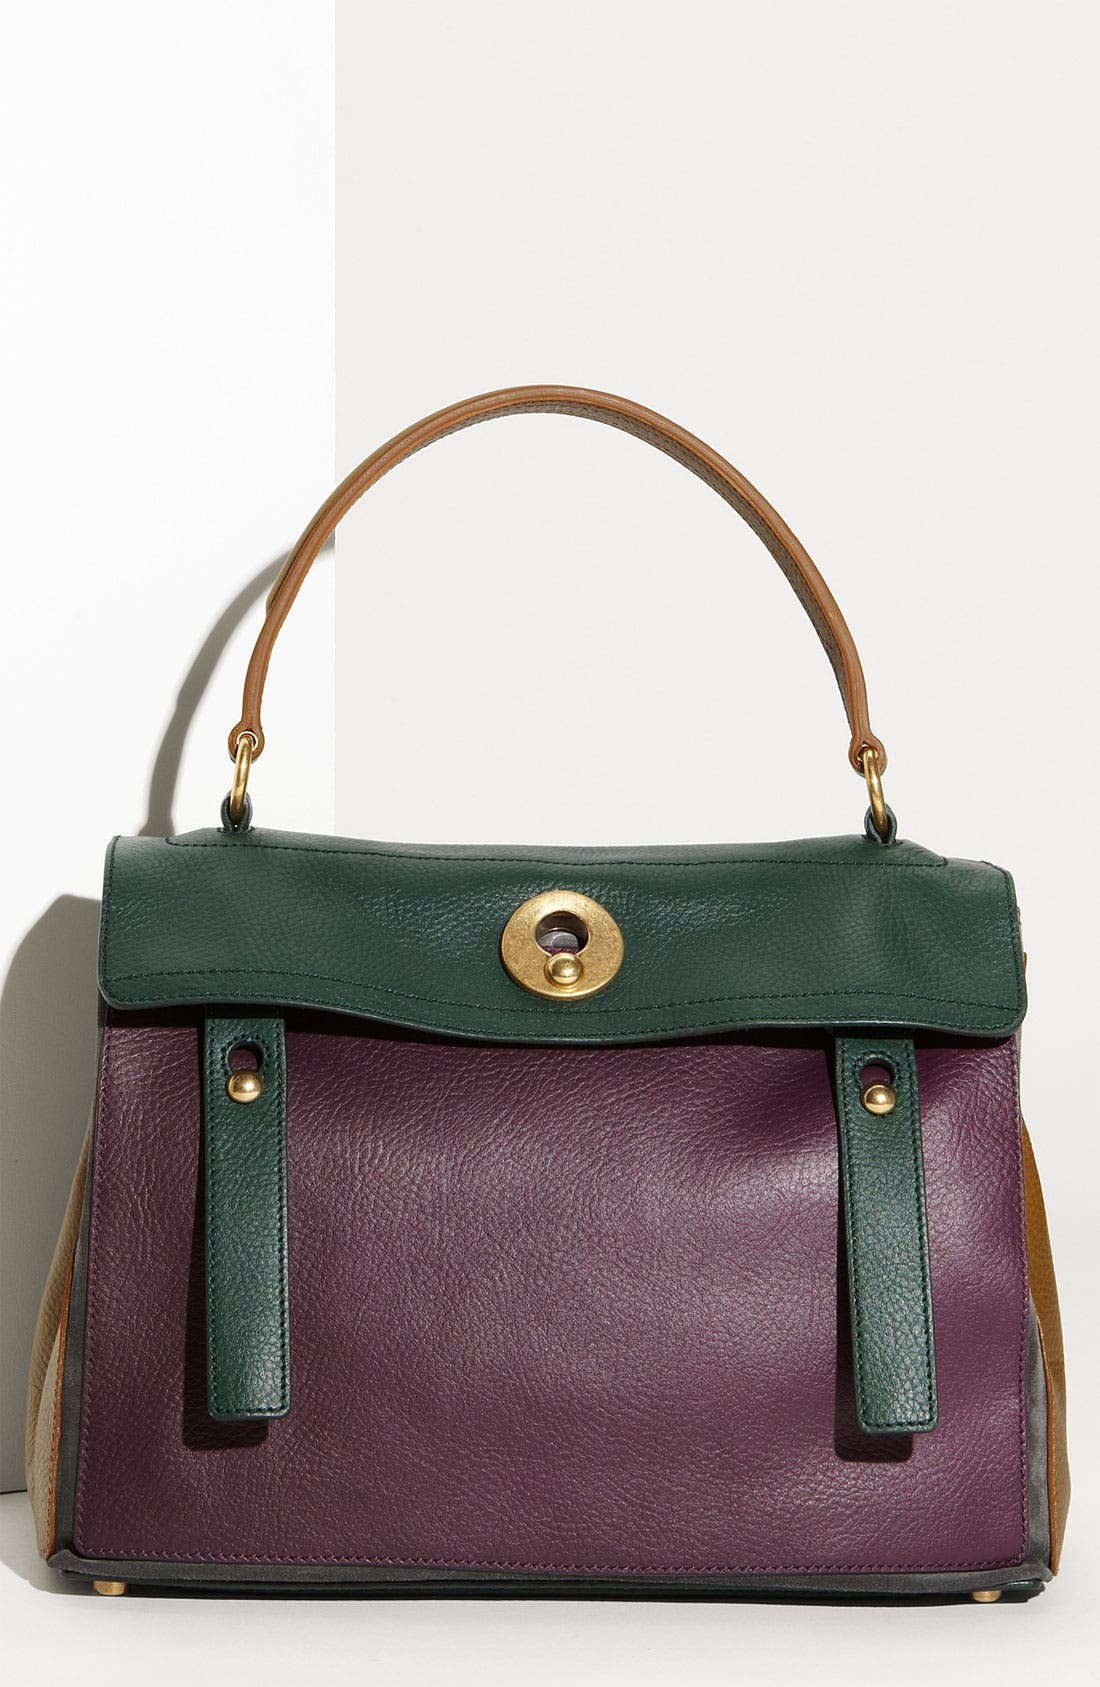 Alternate Image 1 Selected - Yves Saint Laurent 'Muse Two' Leather & Suede Satchel